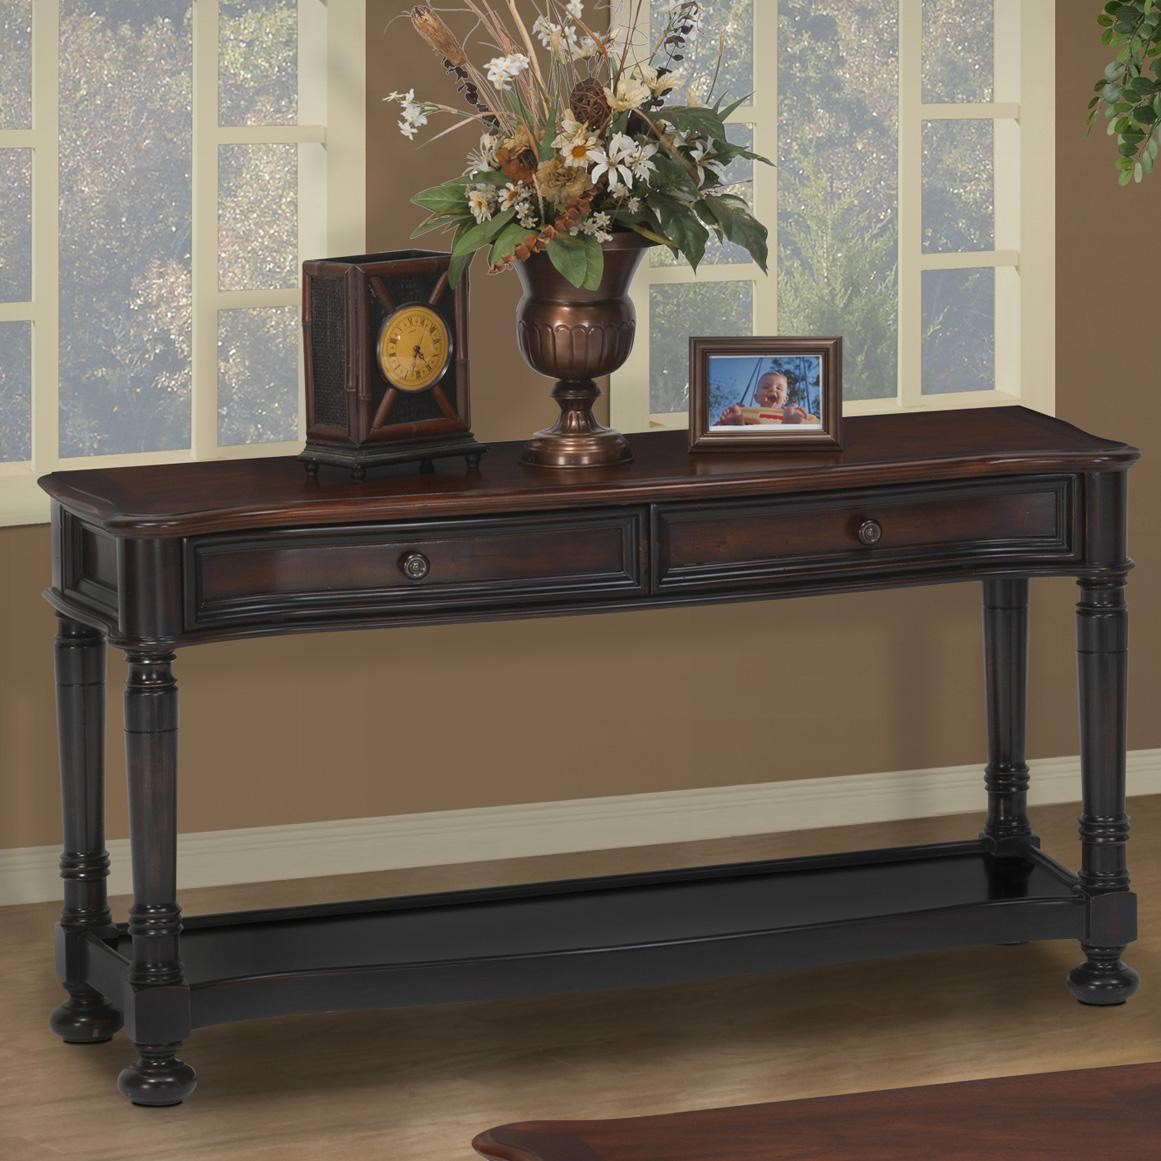 New Classic Randolph Two Tone Sofa Table With 2 Drawers And Shelf